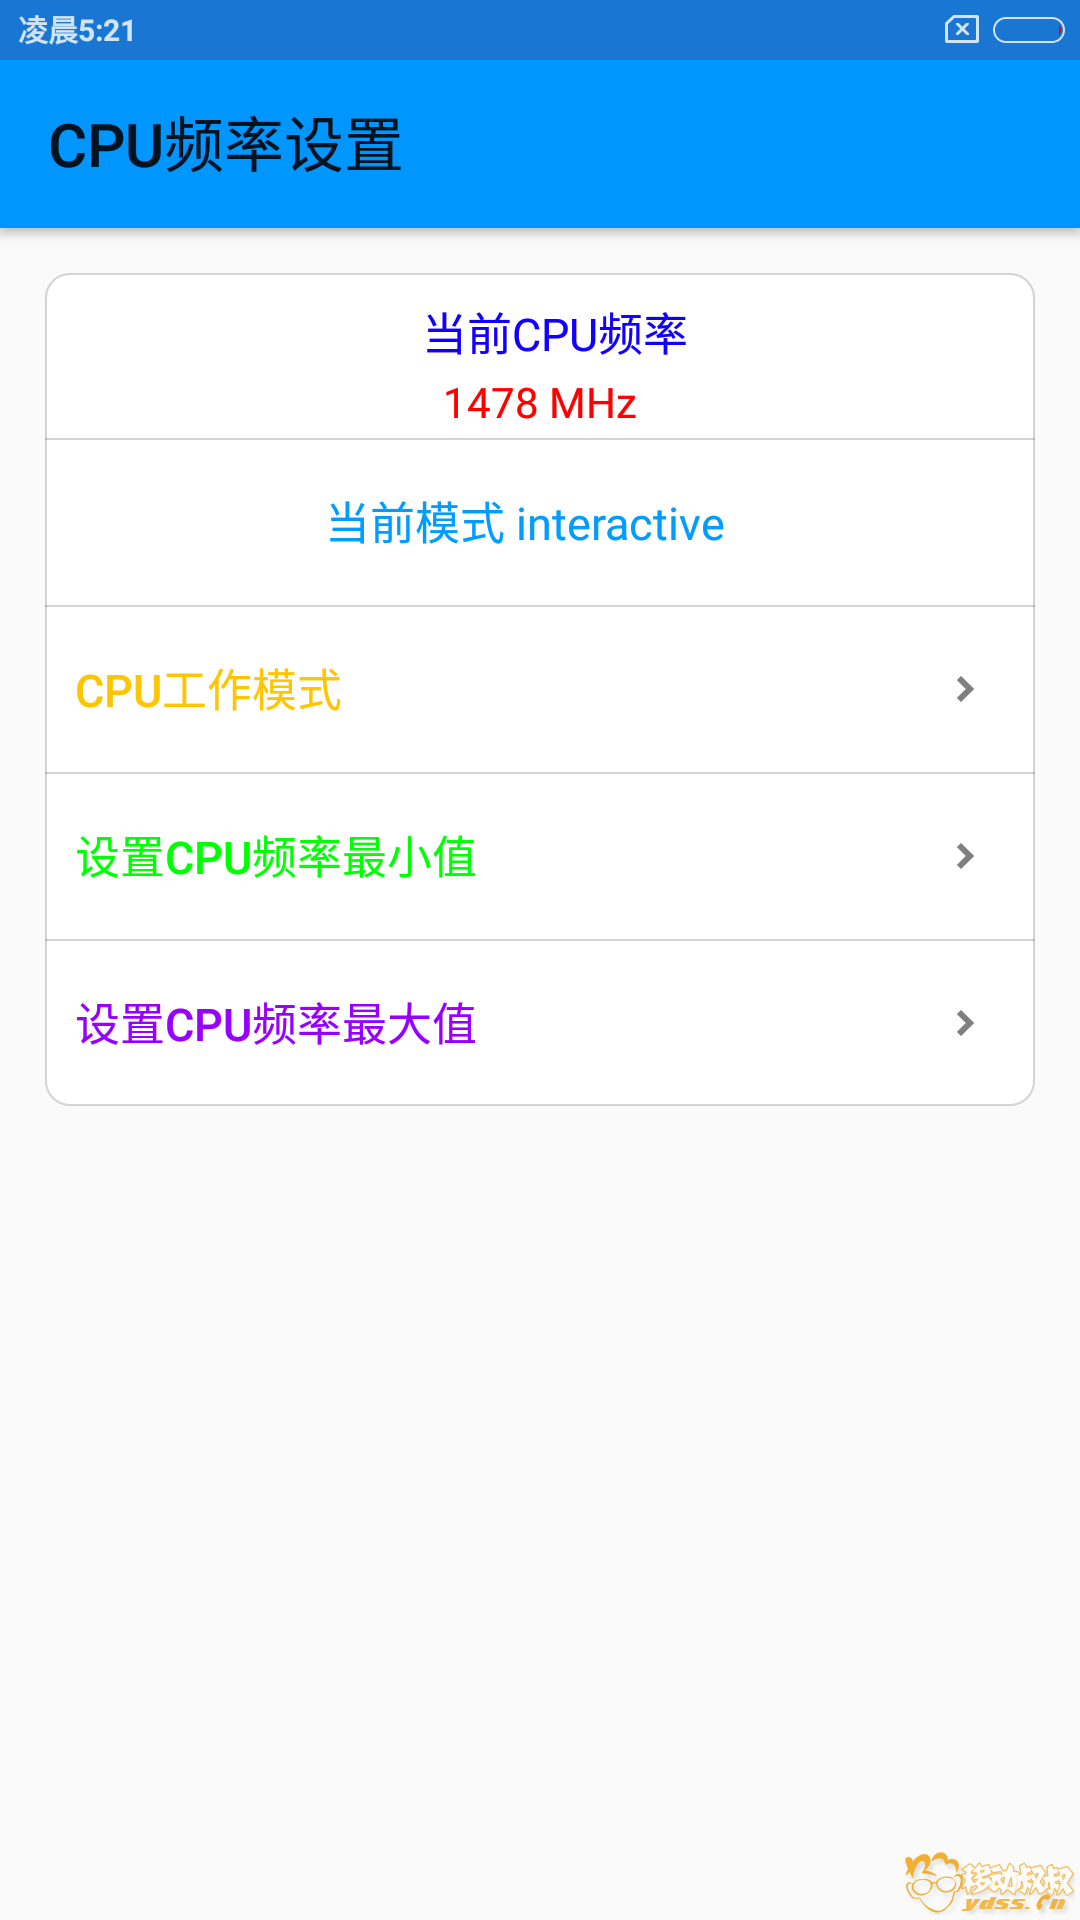 Screenshot_2018-05-16-05-21-05-710_com.zhanhong.t.png